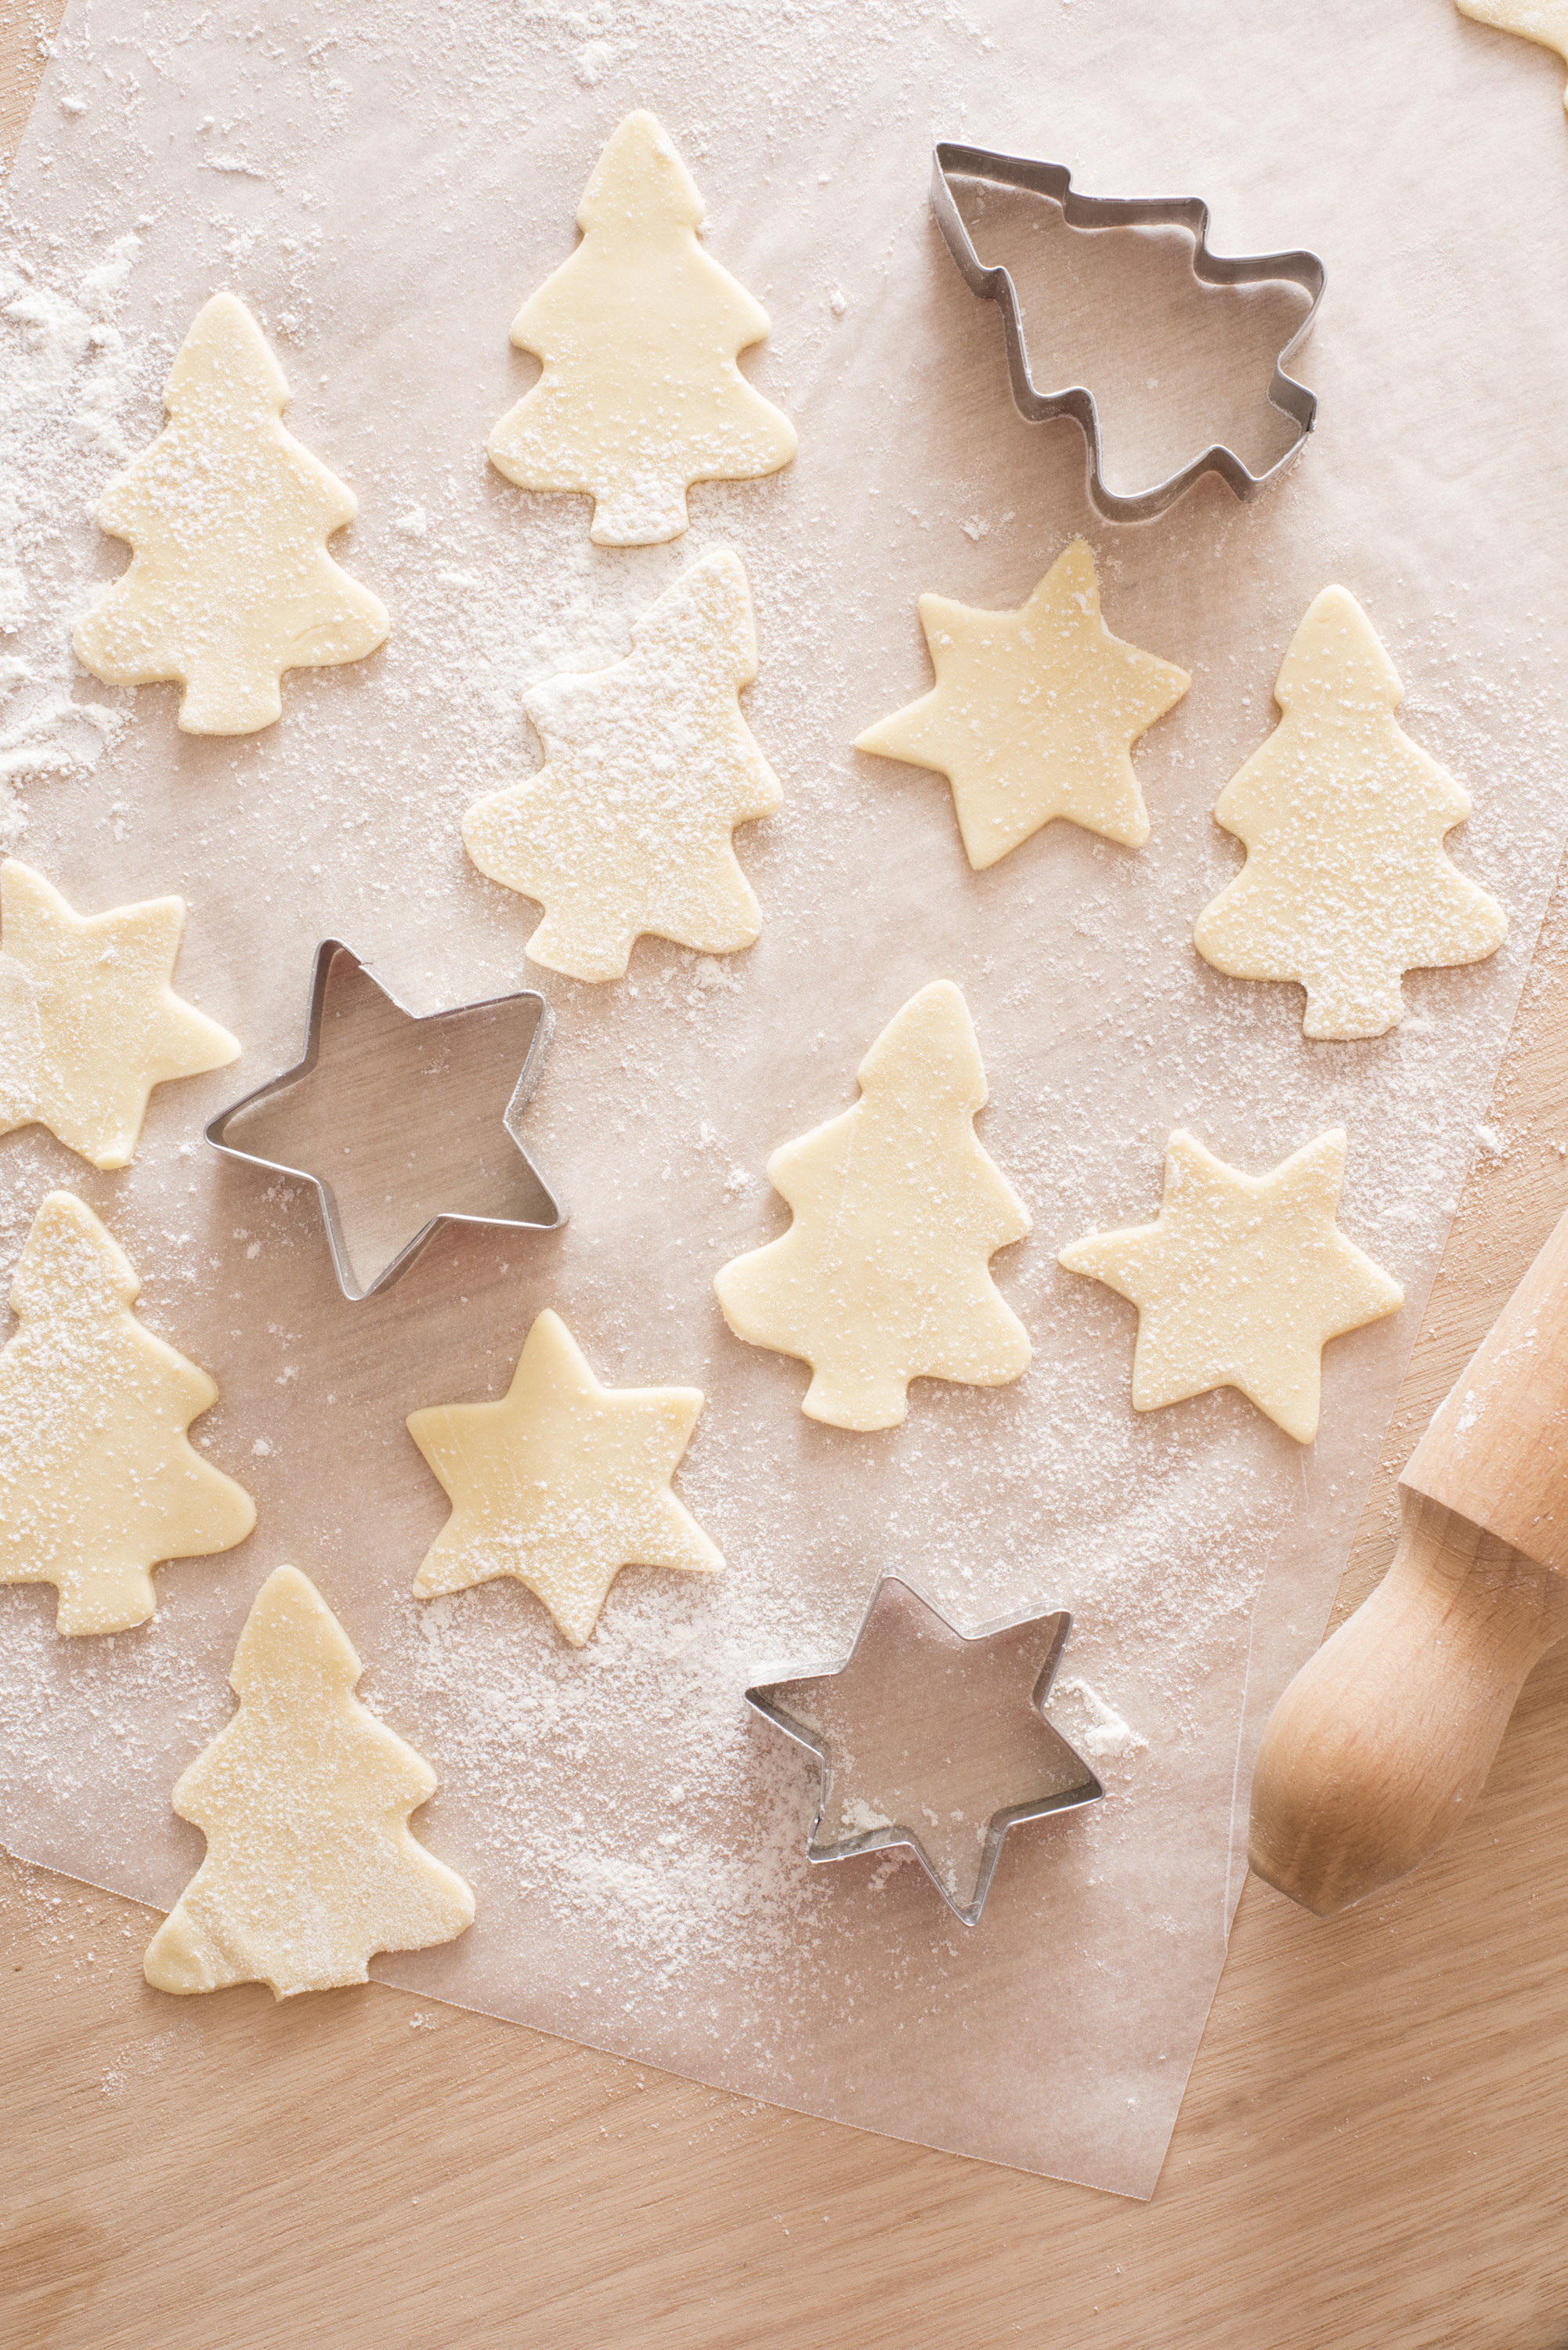 Christmas baking of traditional festive cookies in tree and star shapes with an overhead view of metal cookie cutters and cut out raw pastry on floured paper on a kitchen counter